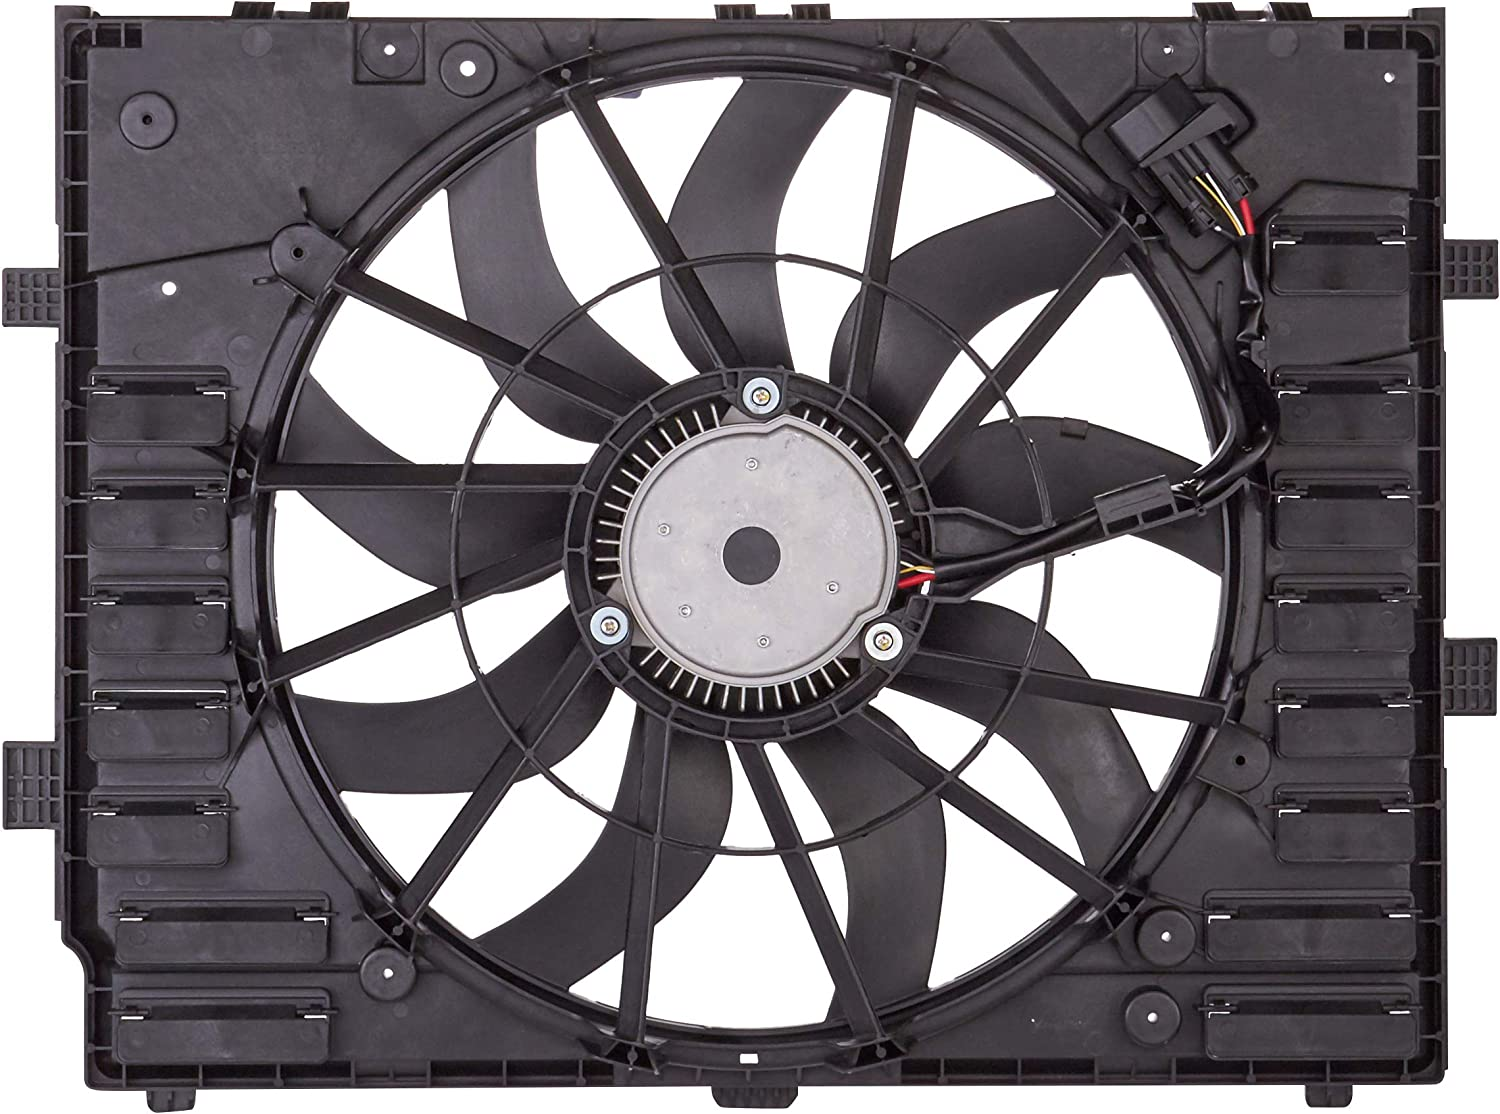 Spectra Fashionable Premium Year-end annual account CF11034 Engine Fan Assembly Cooling